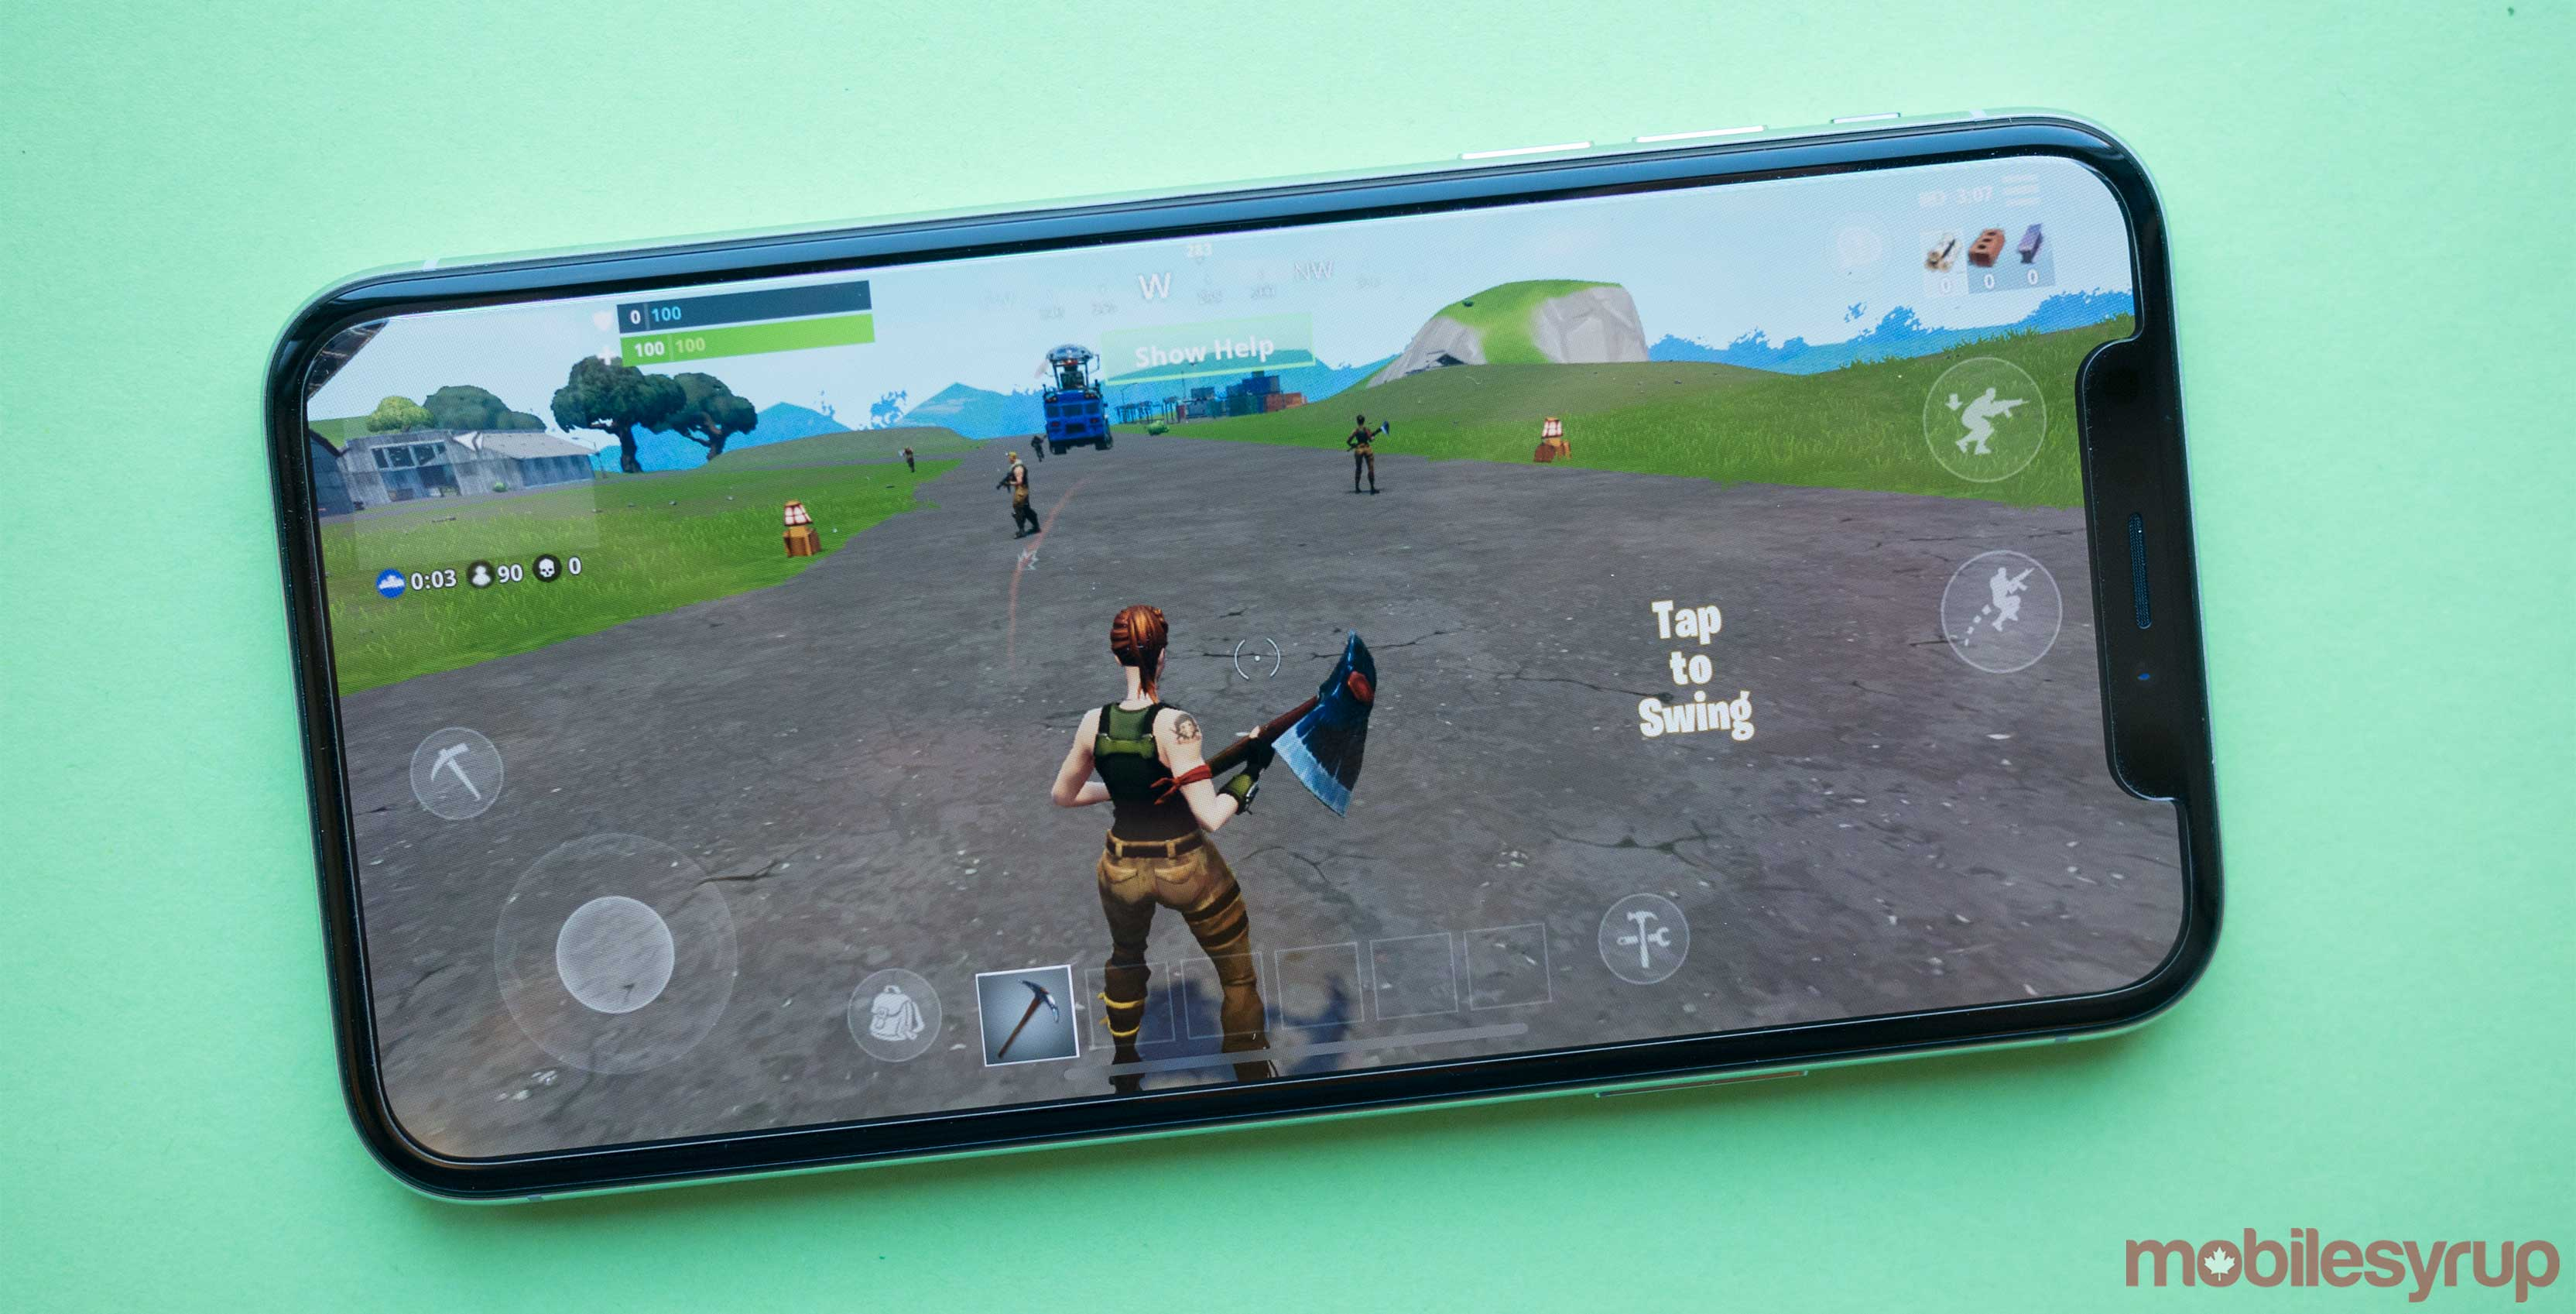 Fortnite Mobile Making Five Times The Revenue Of Pubg Mobile